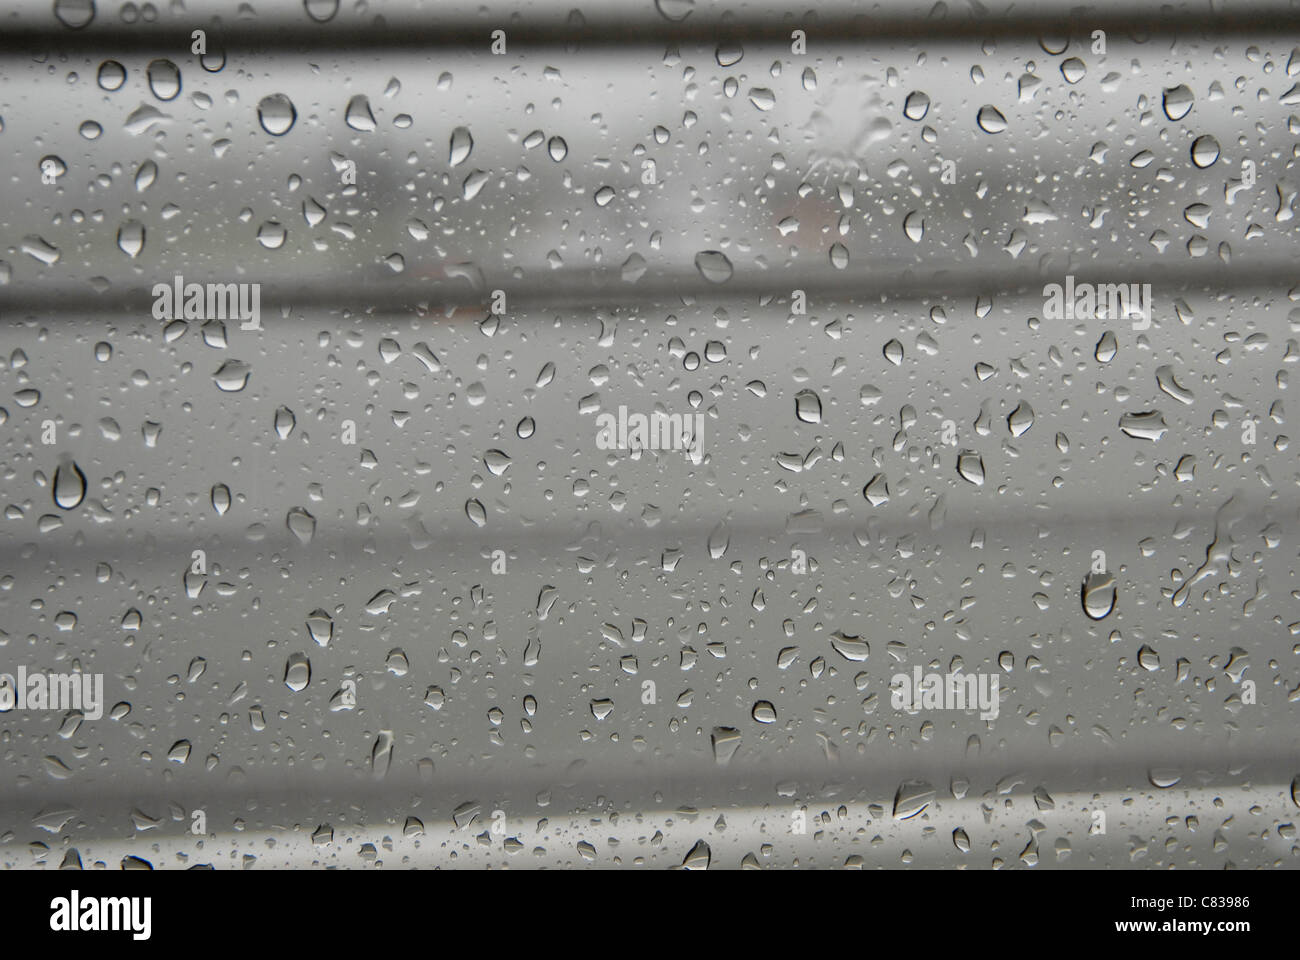 Raindrops on window - Stock Image